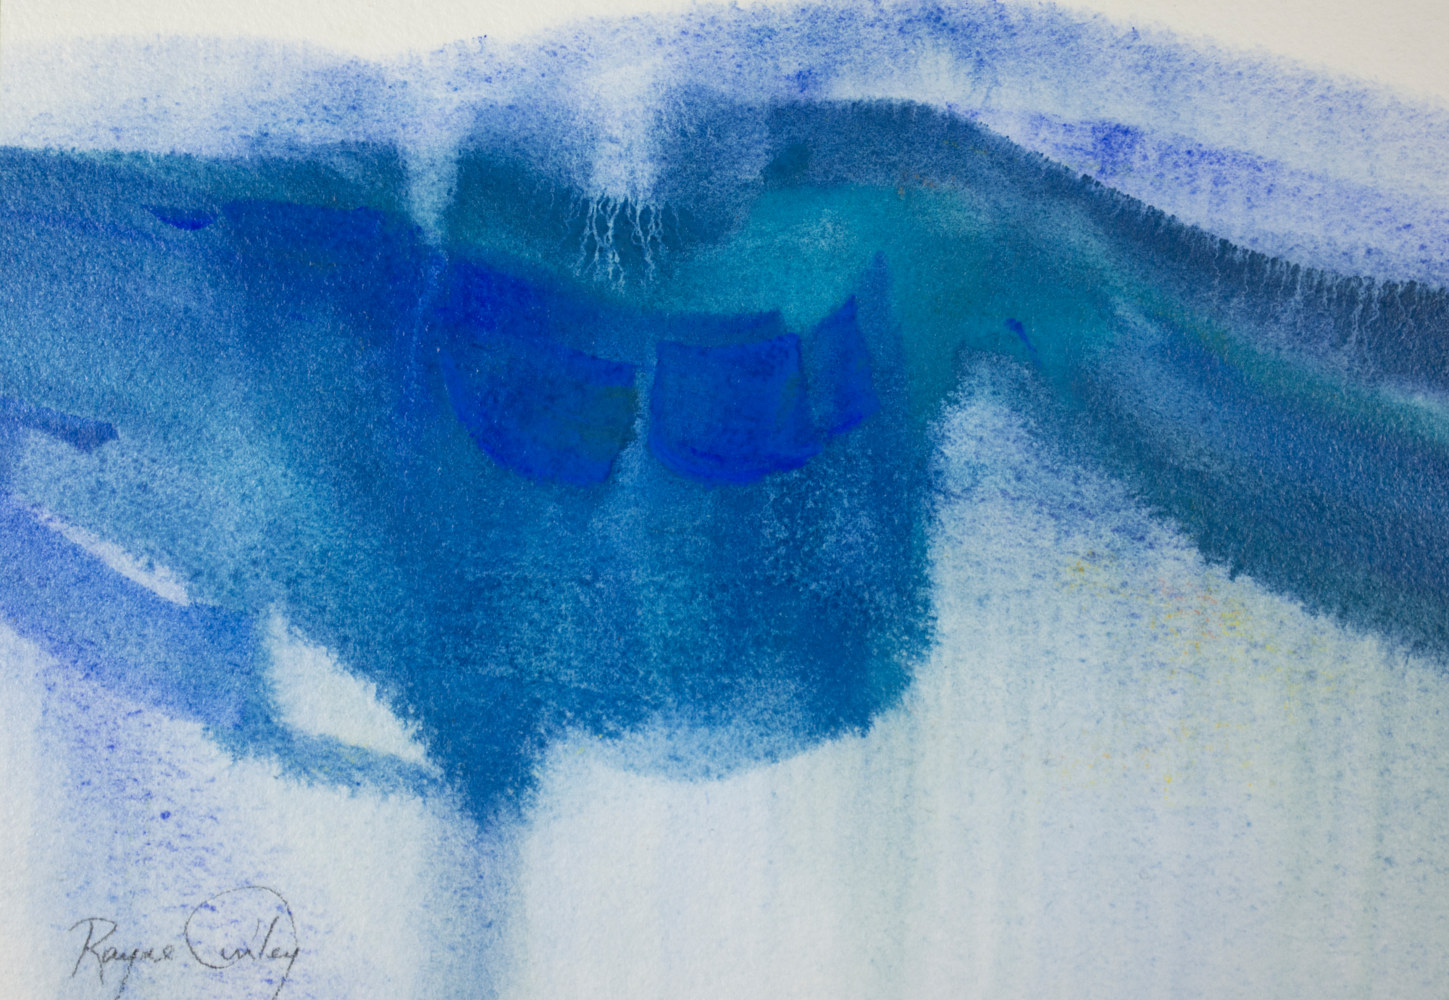 Rayne Tunley, Study in Blue, 7.5in x 10.5in, gouache by Rayne Tunley